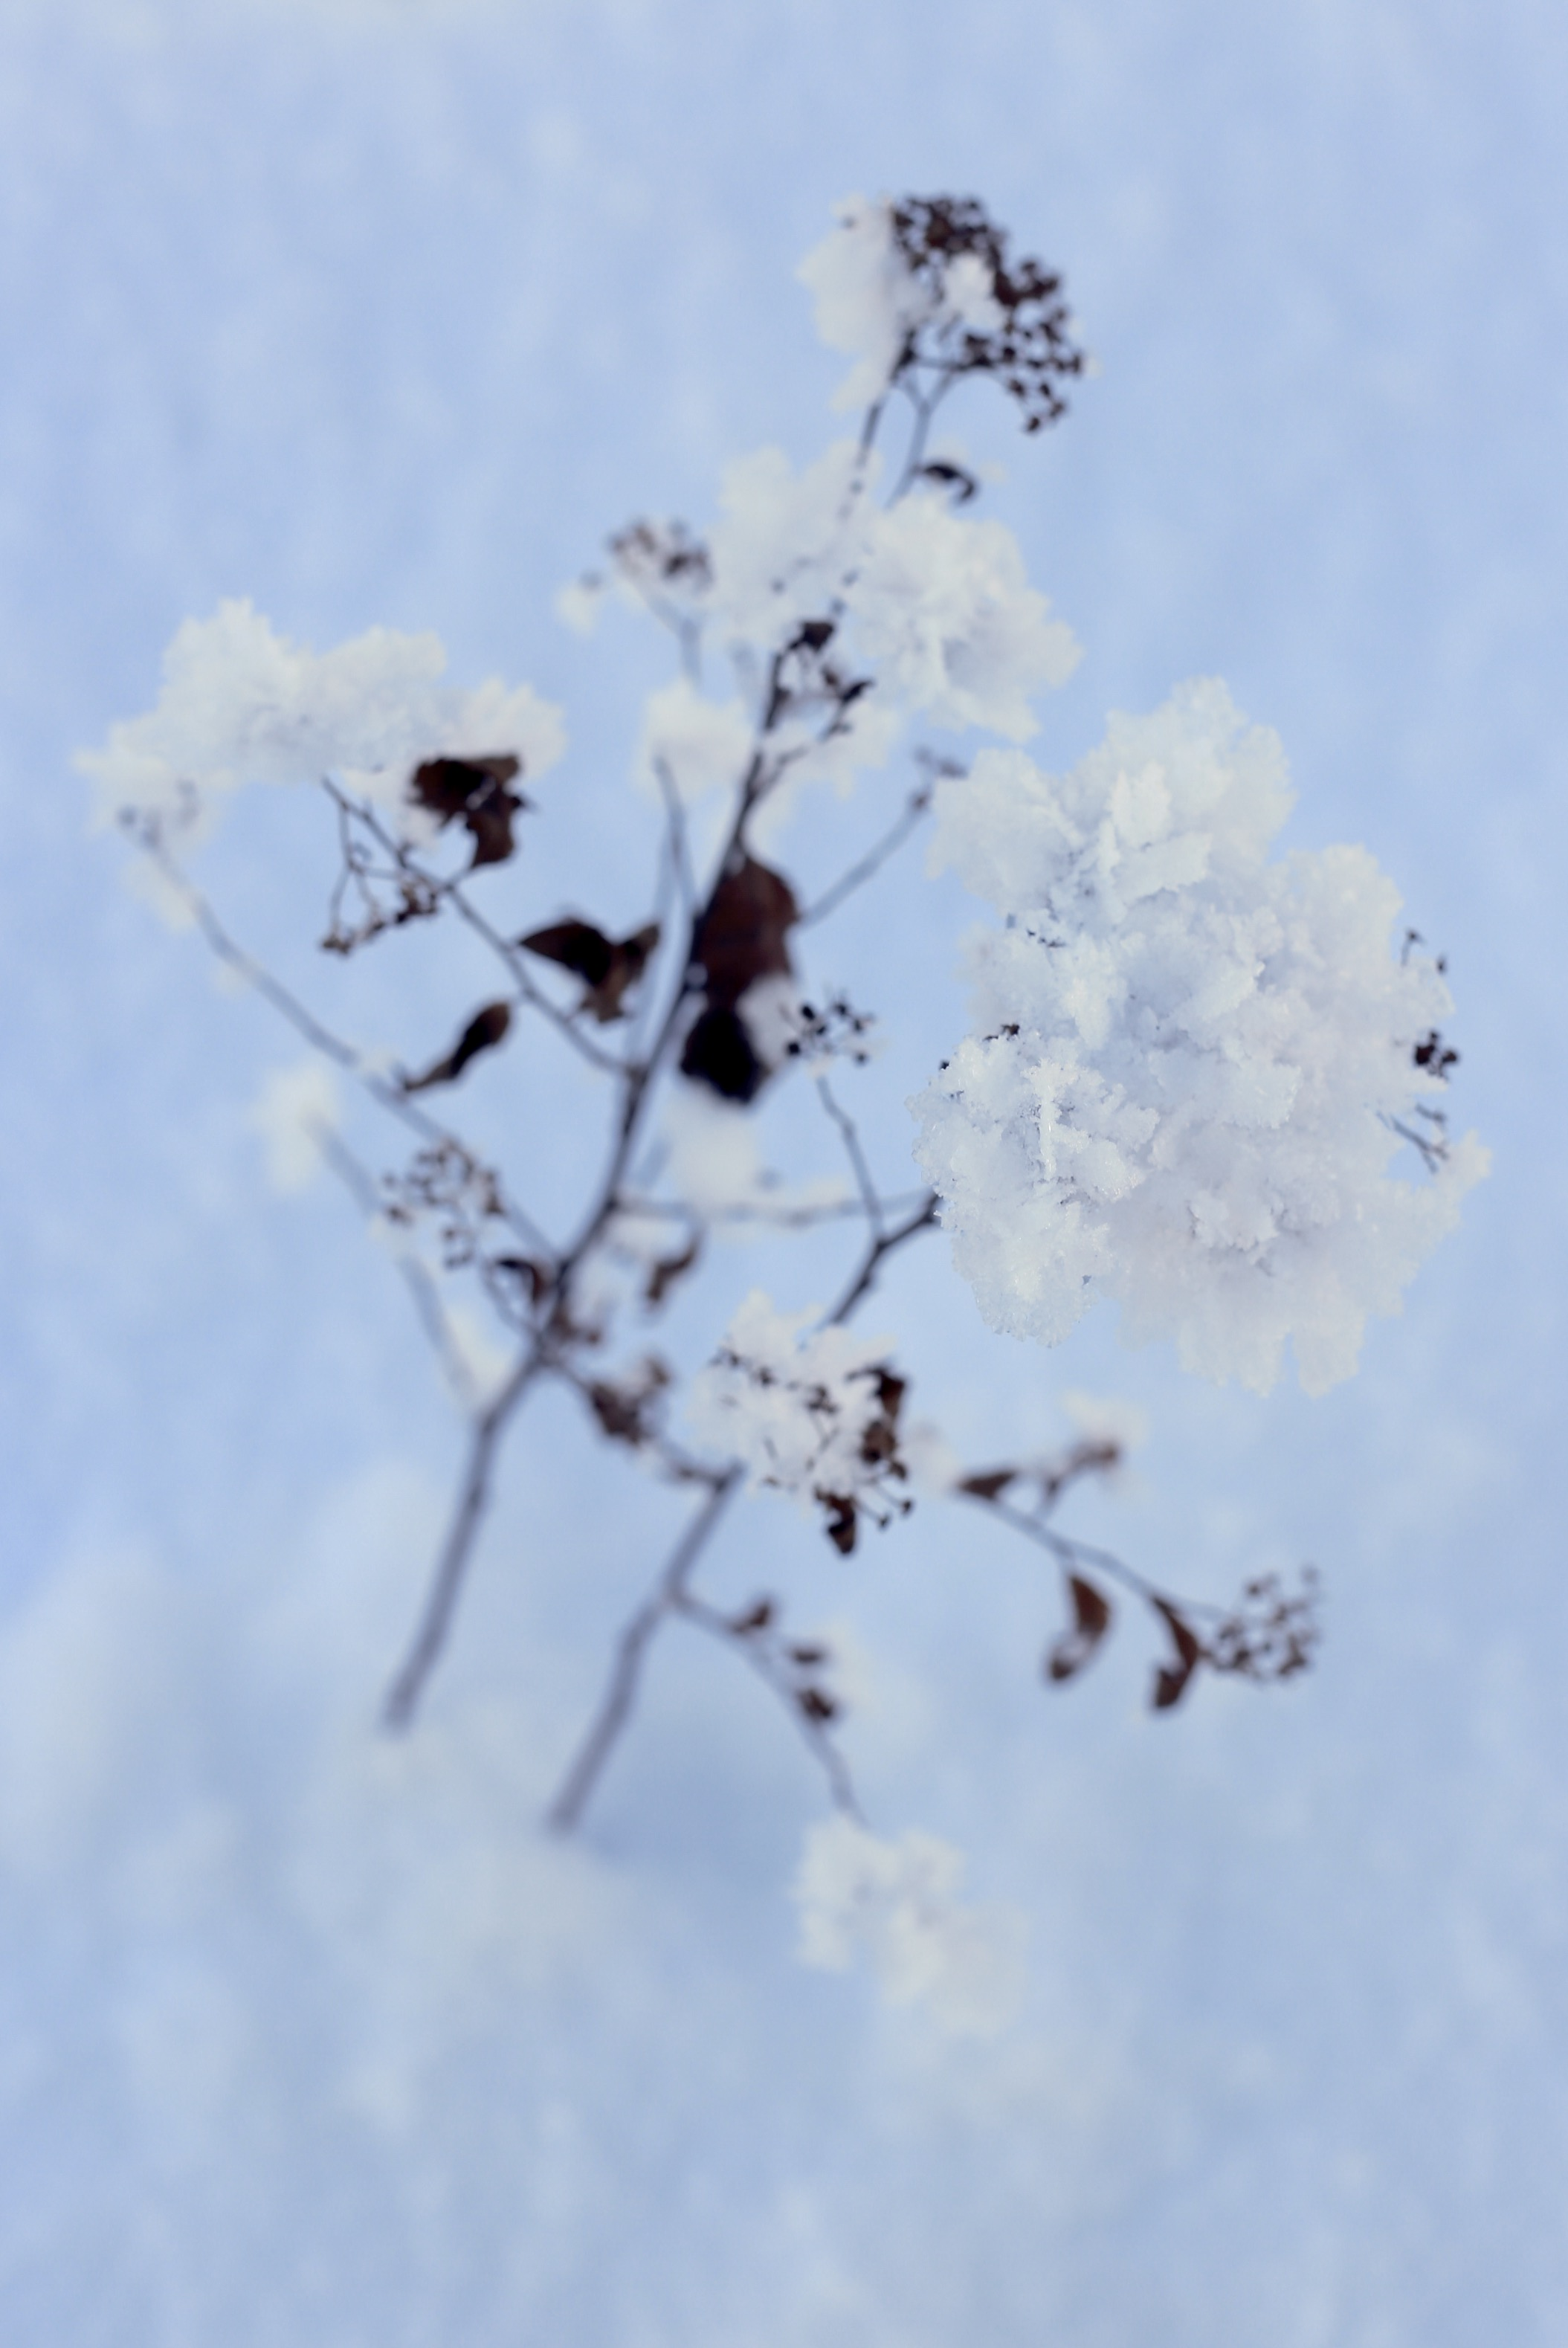 A snow flower made of ice crystals.